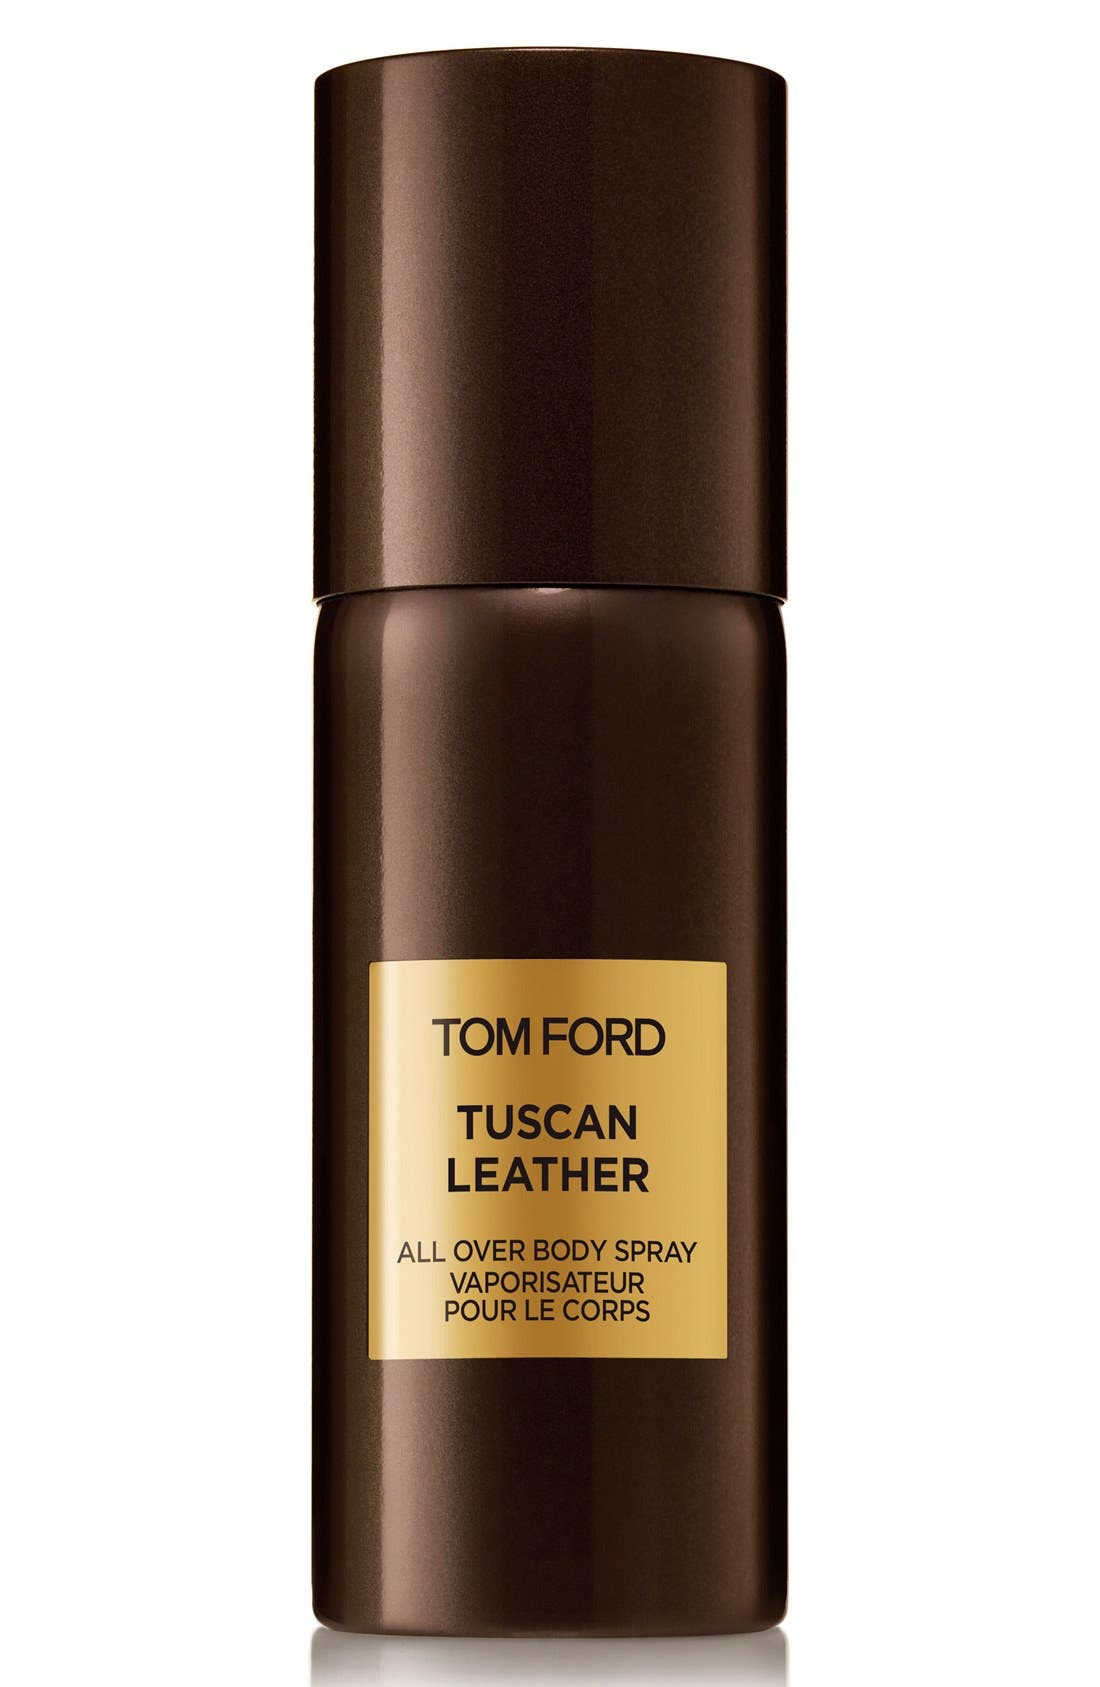 Tom Ford 'Tuscan Leather' All Over Body Spray